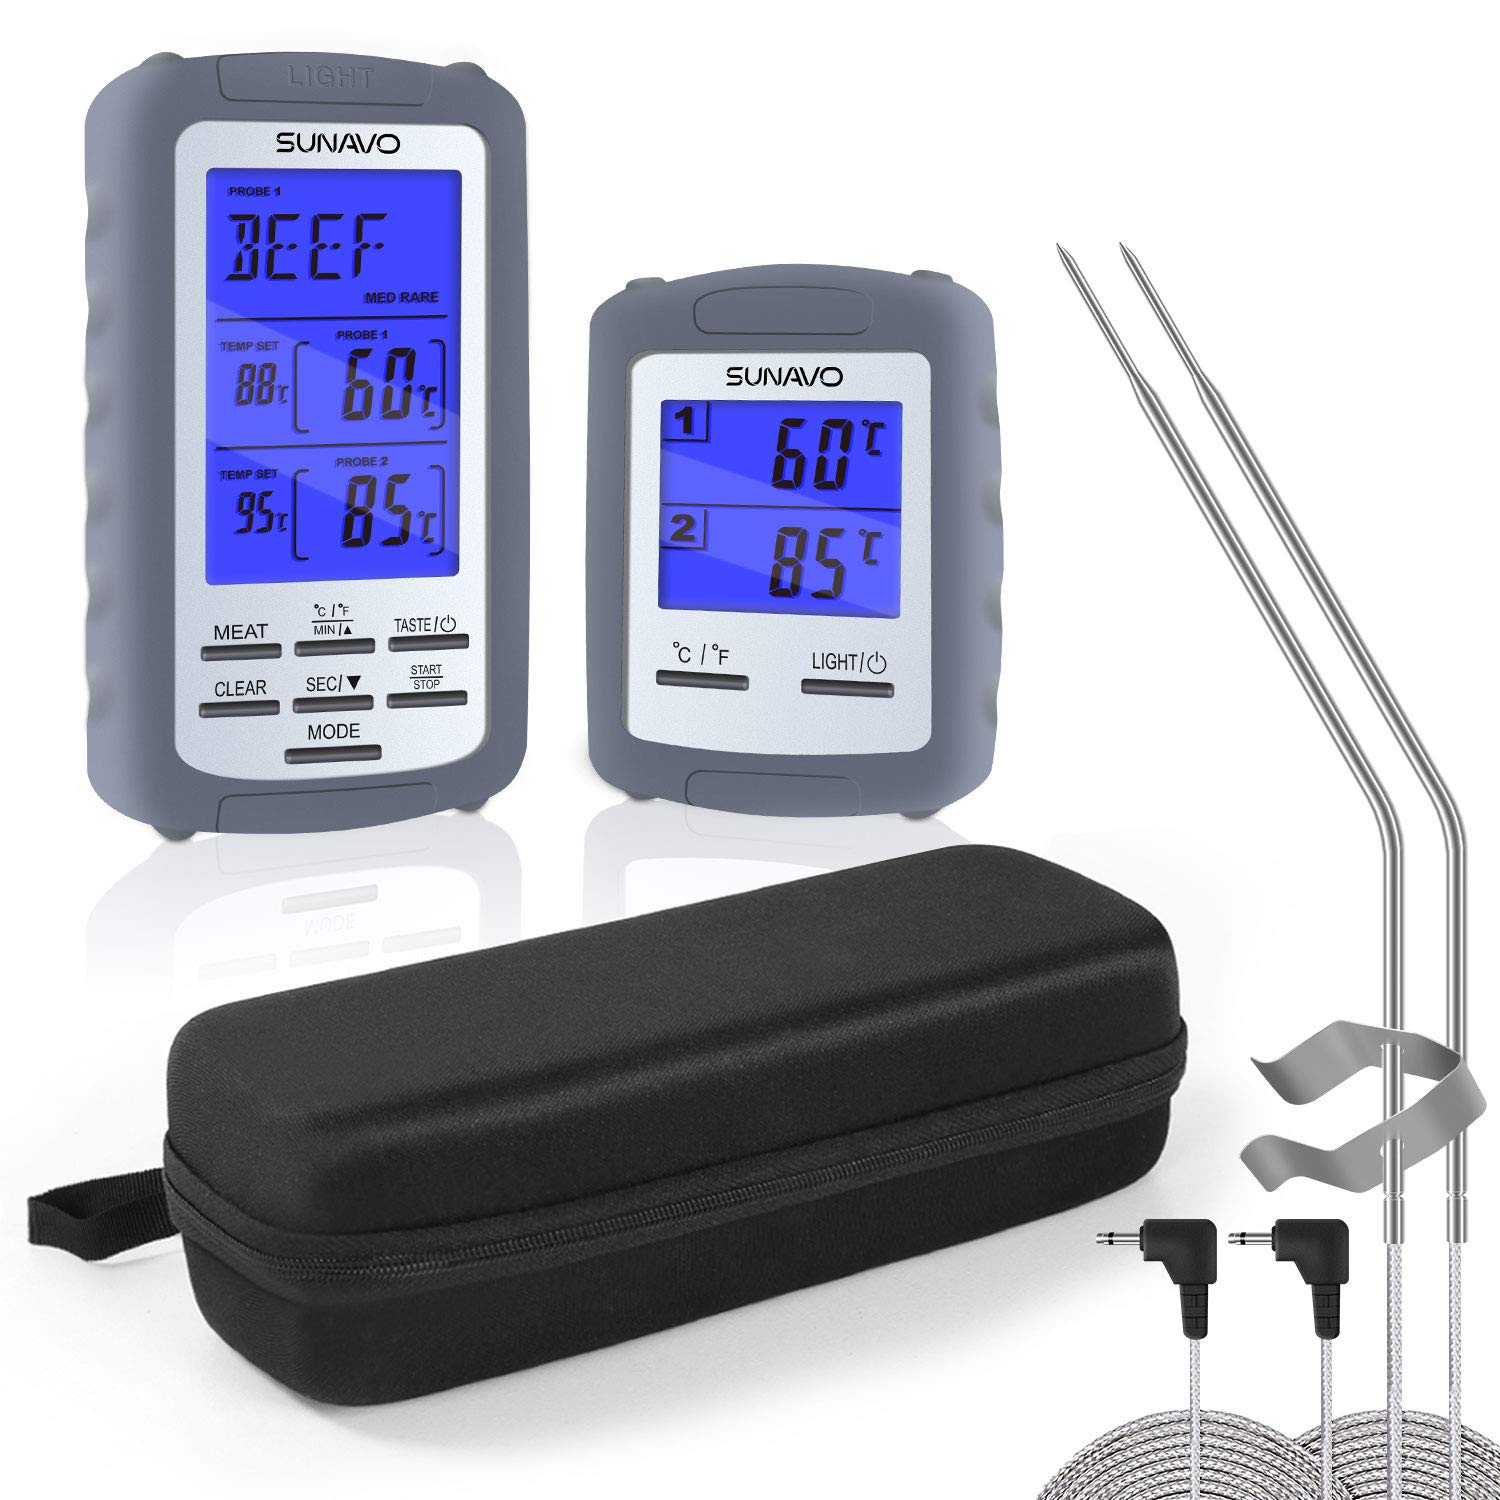 SUNAVO MT-01 Meat Thermometer for Grilling Wireless Barbecue Thermometer Digital with Large LCD and Timer Alarm for Grilling Oven Kitchen Smoker BBQ Grill with Dual Temperature Probe